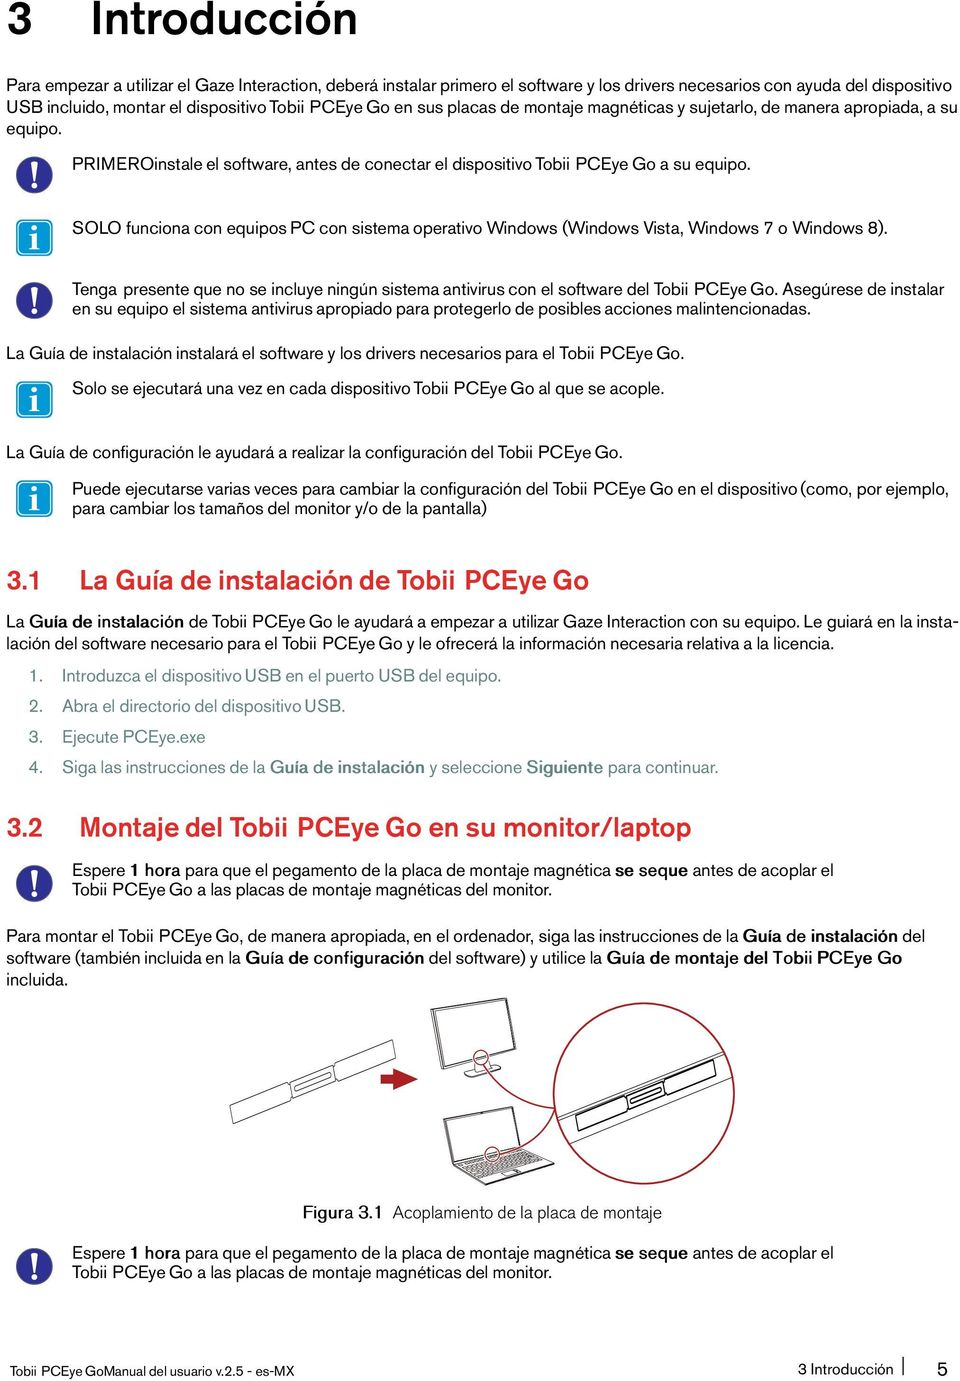 SOLO funciona con equipos PC con sistema operativo Windows (Windows Vista, Windows 7 o Windows 8). Tenga presente que no se incluye ningún sistema antivirus con el software del Tobii PCEye Go.